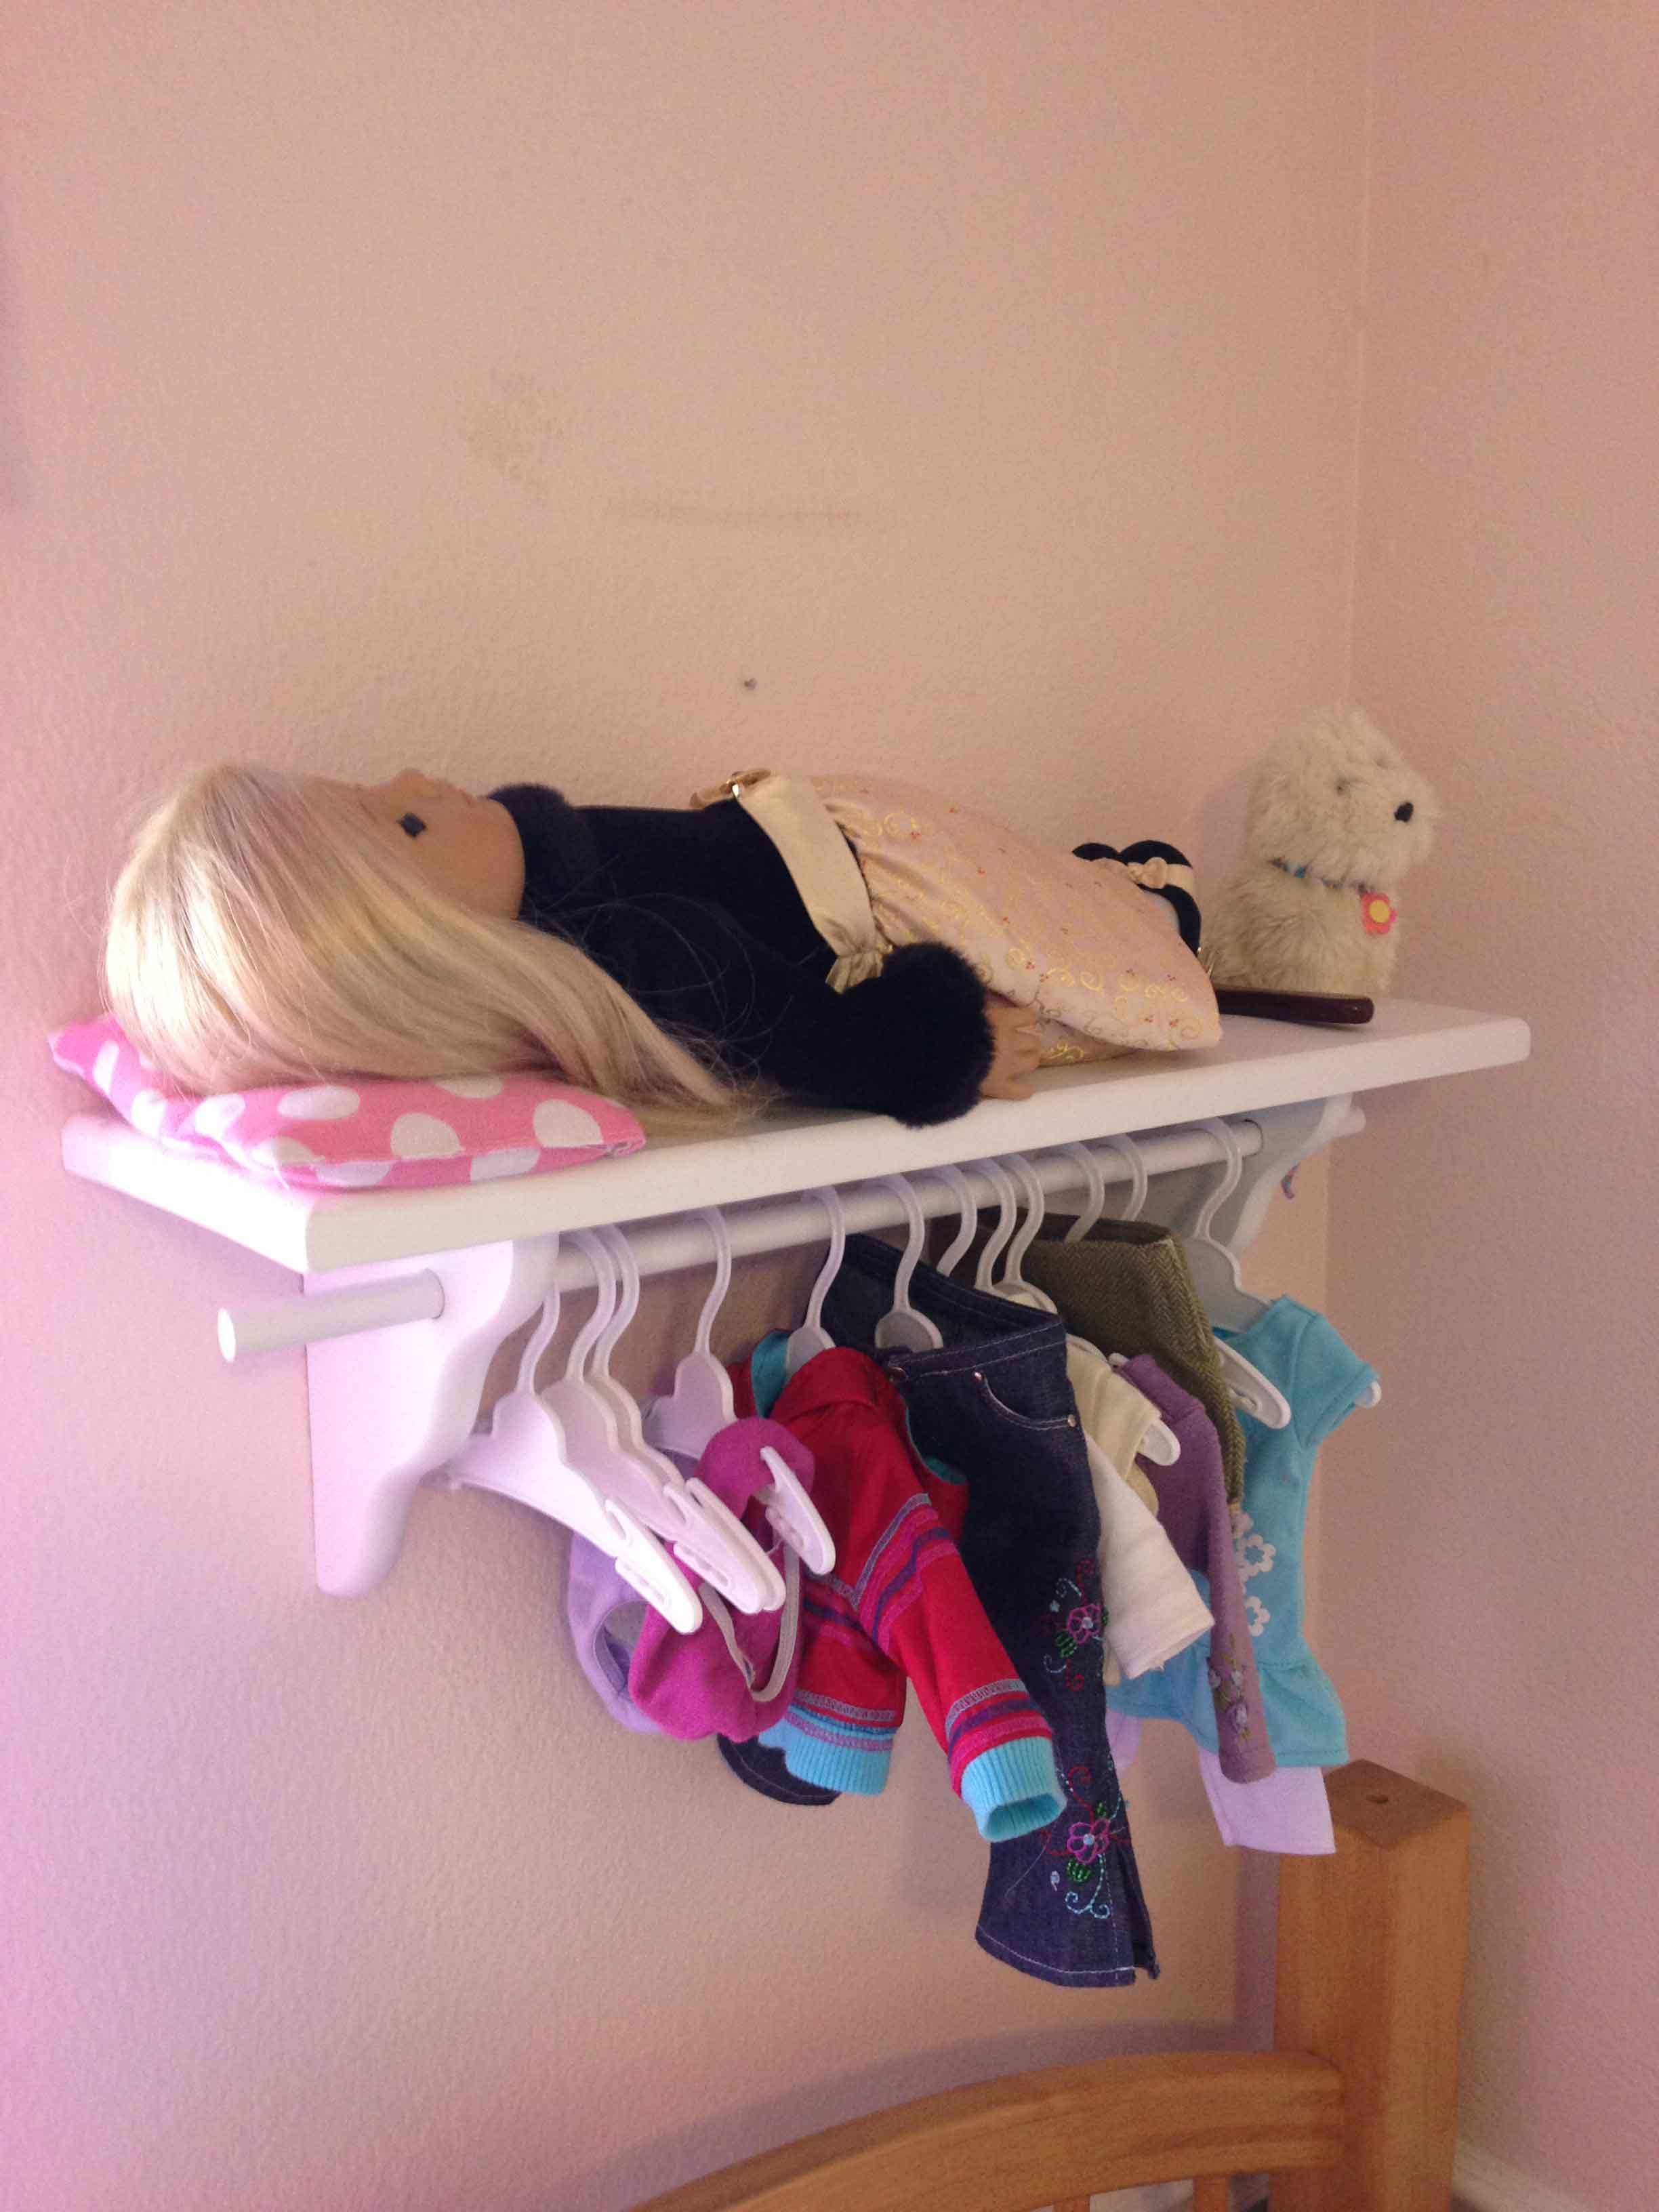 You Take A Shelf And Dowel And Turn It Into A Bed And Storage For Her  Clothes And Accessories! What A GREAT Idea. I Bought This Shelf At  Michealu0027s (the Ones ...